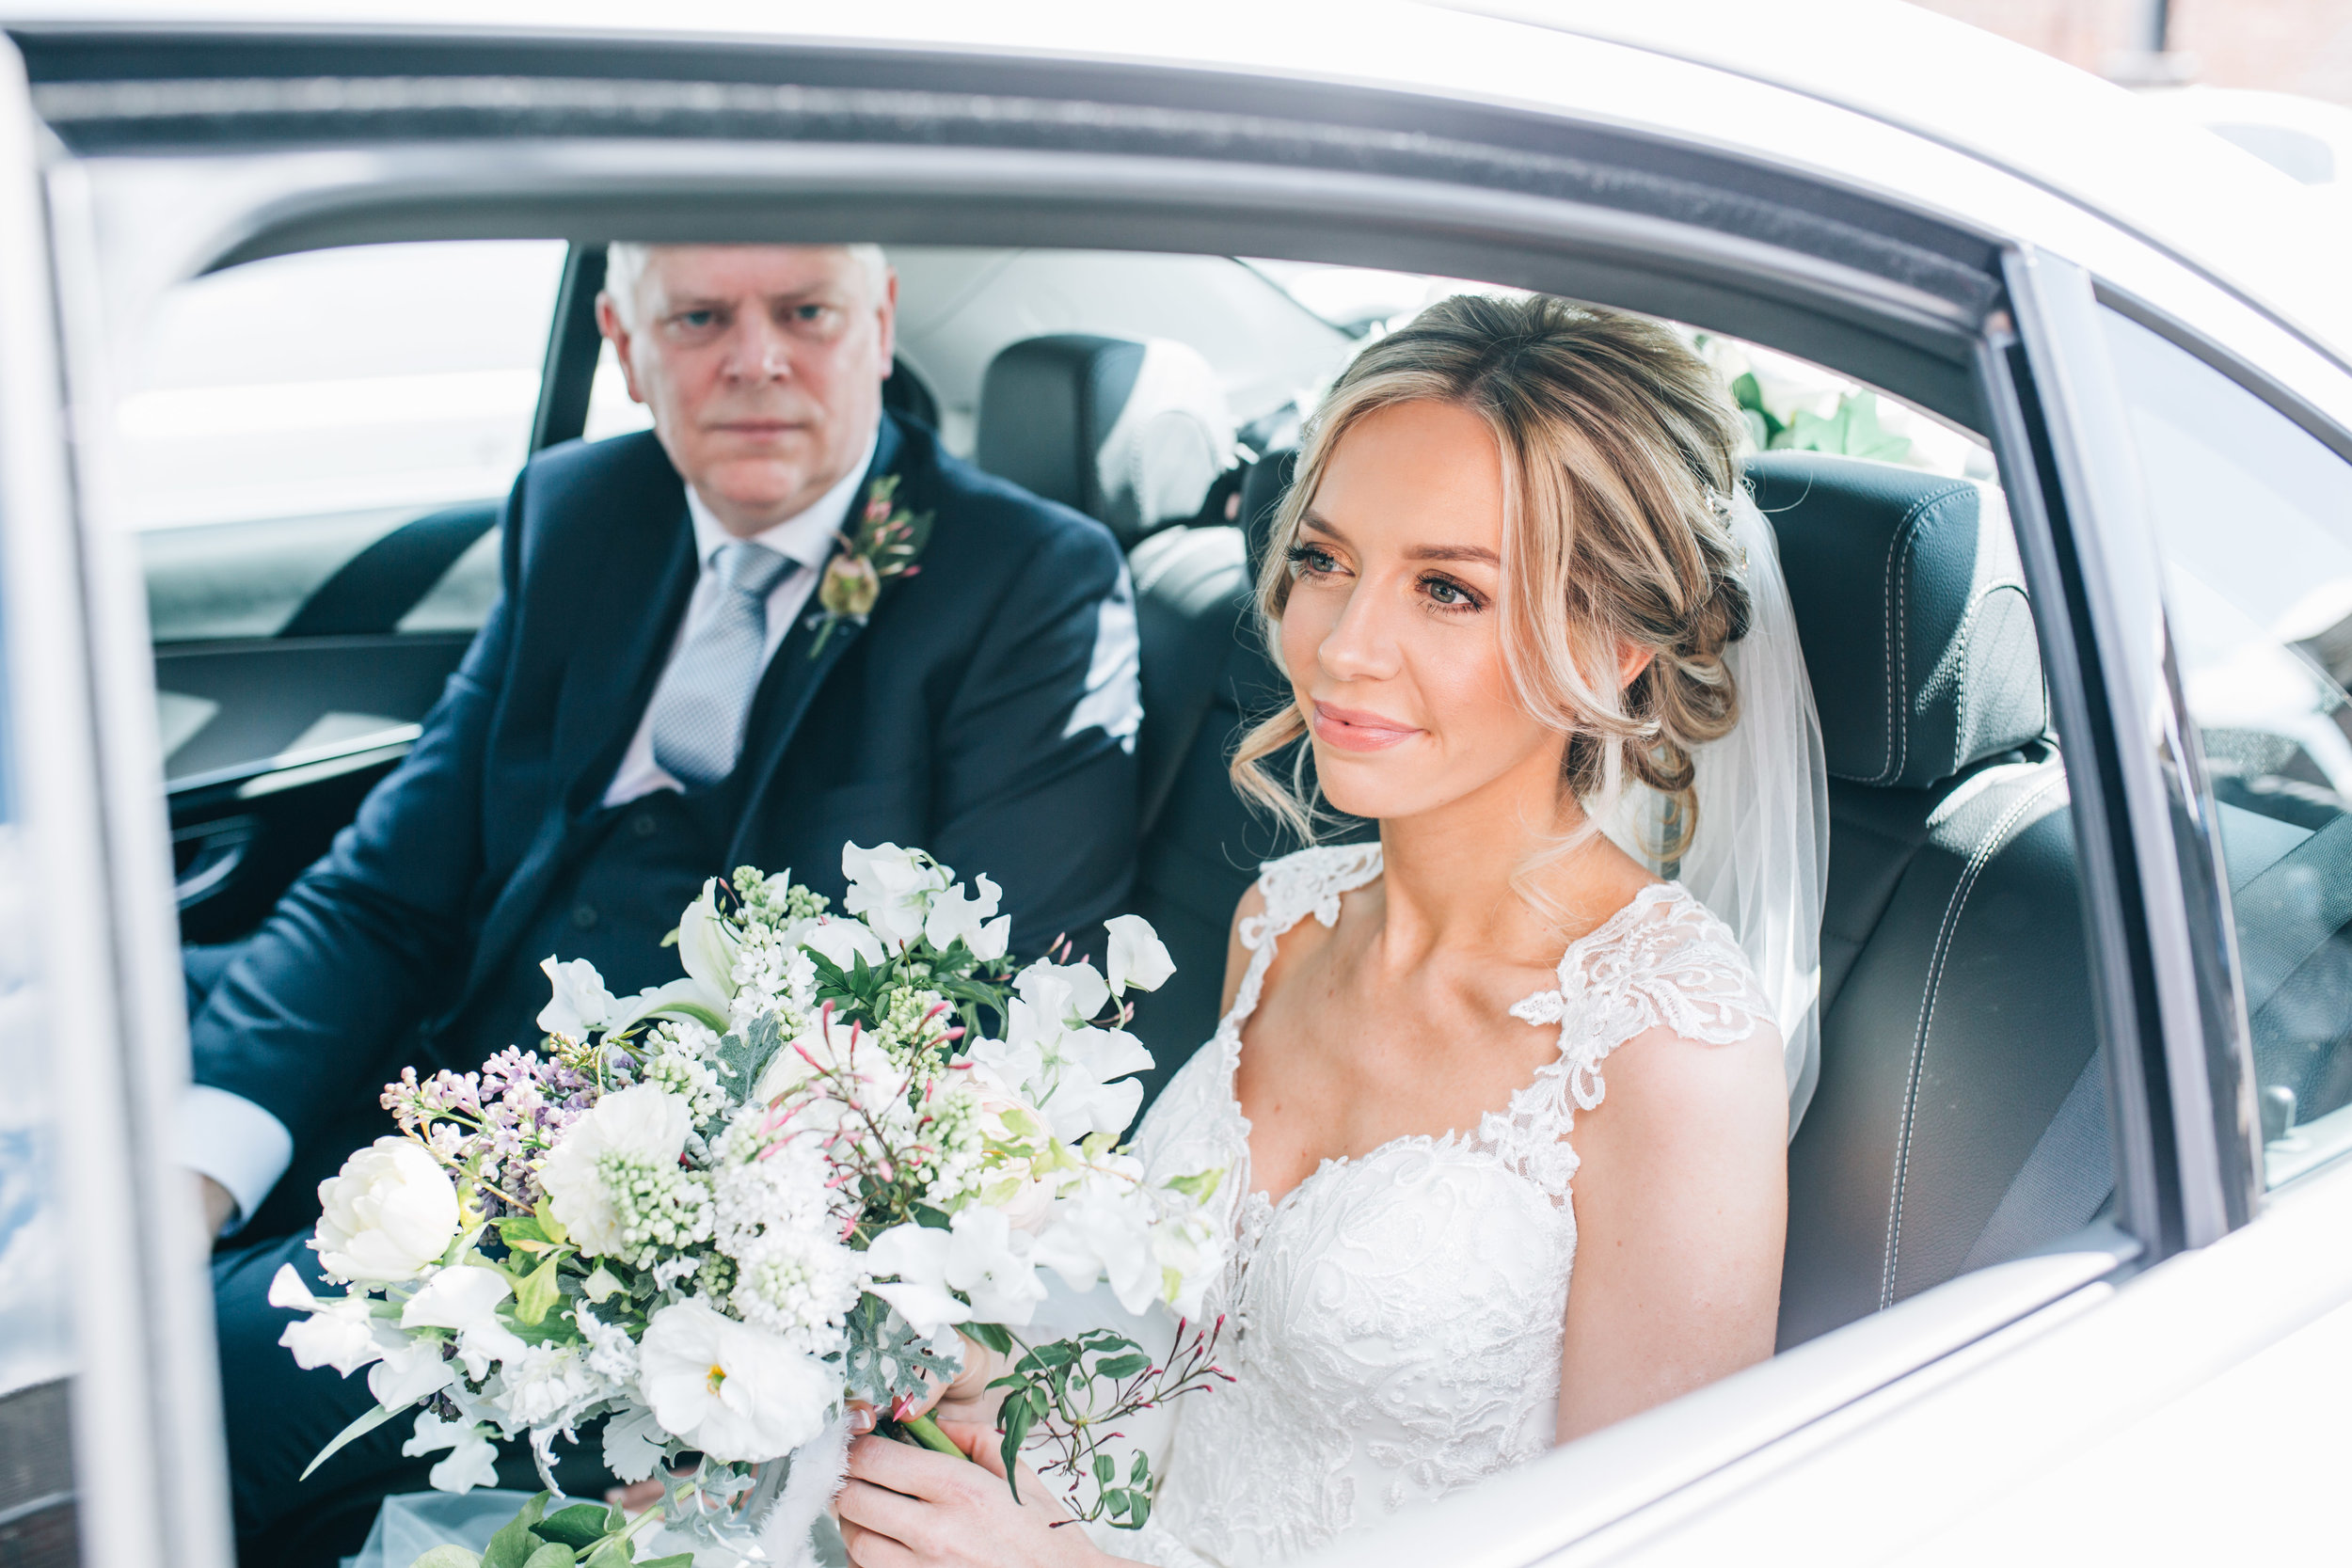 Bride arrives at Church - Cheshire wedding photography